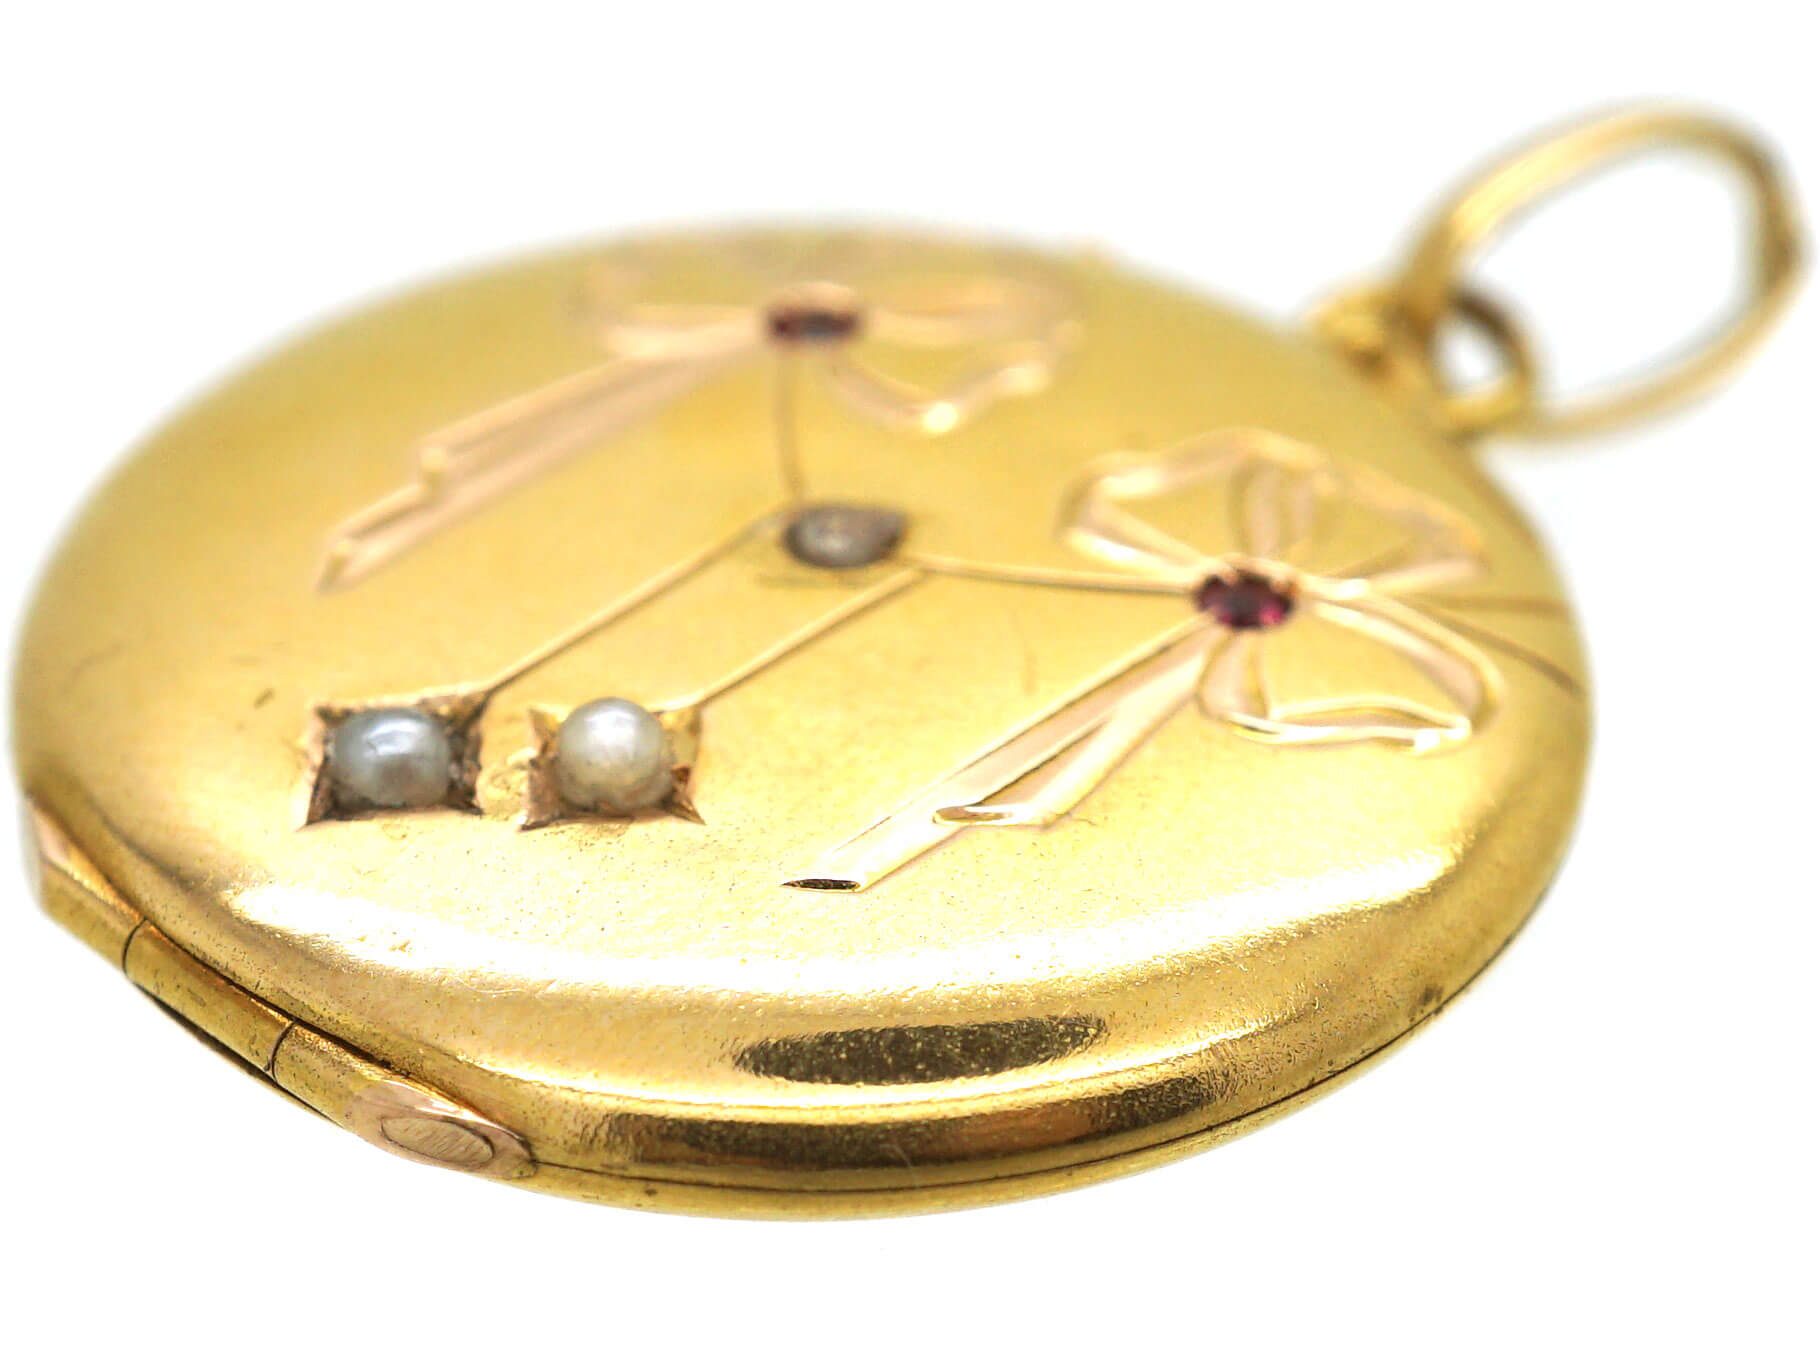 French 18ct Gold Round Locket with Bow & Drops Motif